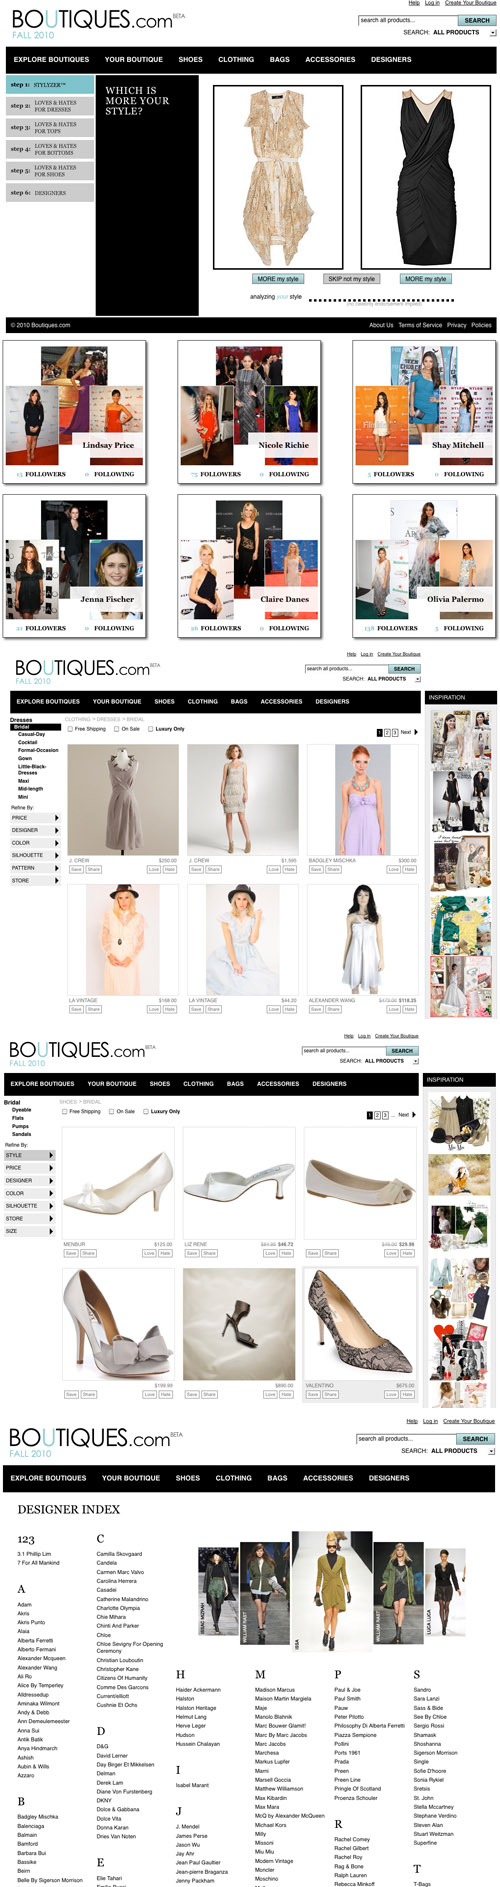 Google's new fashion site Boutiques.com, online designer clothes and accessories shopping